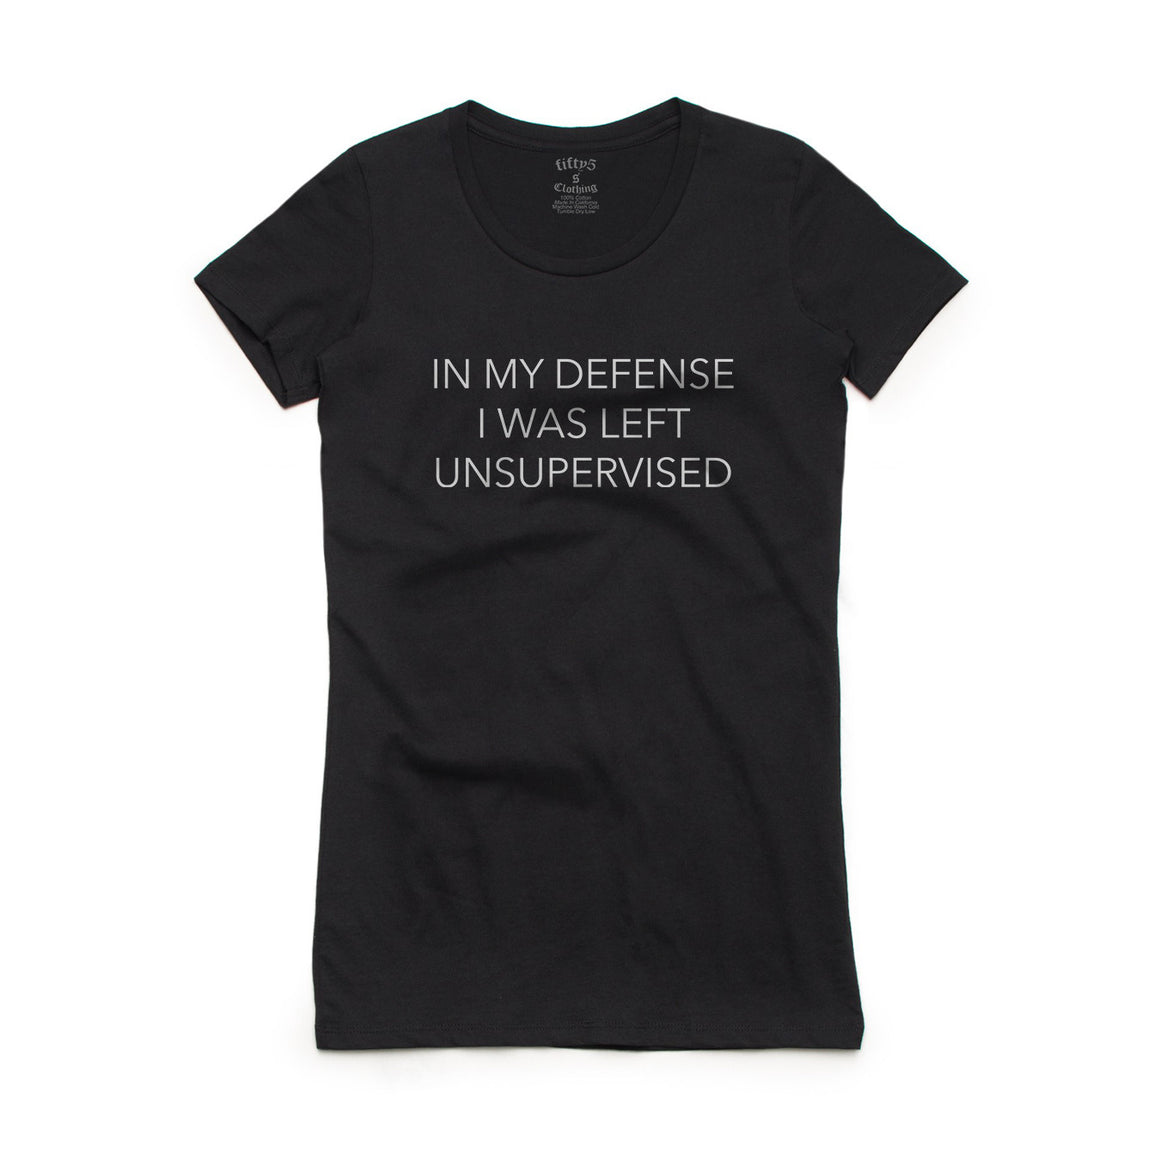 Fifty5 Clothing In My Defense Women's Crew Neck T-Shirt